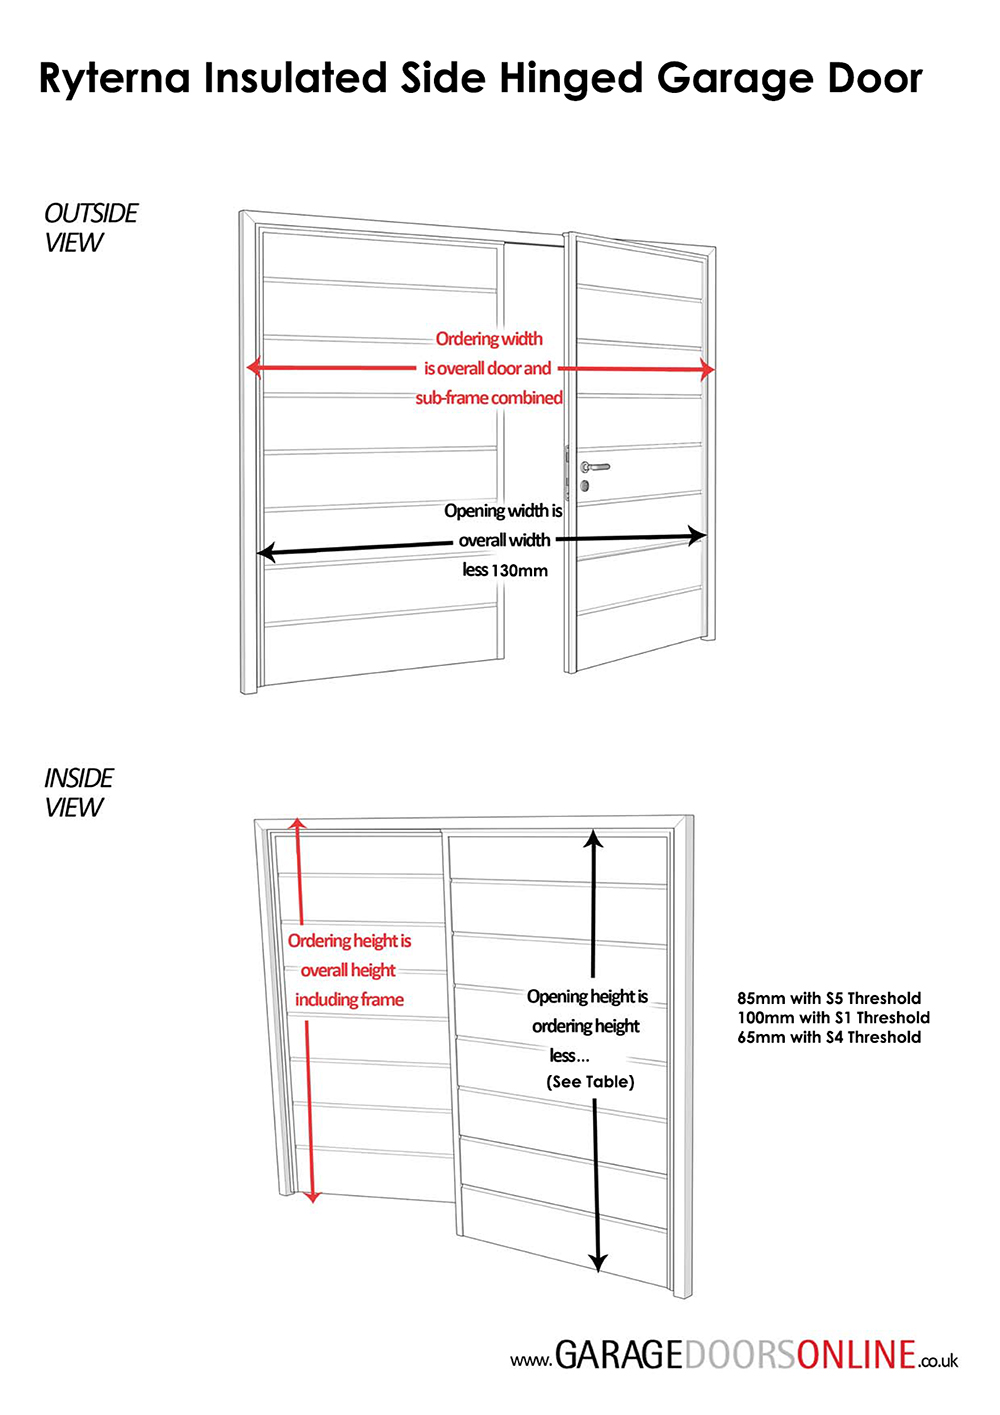 Ryterna Insulated Side Hinged Garage Door Measuring Guide Dimensions